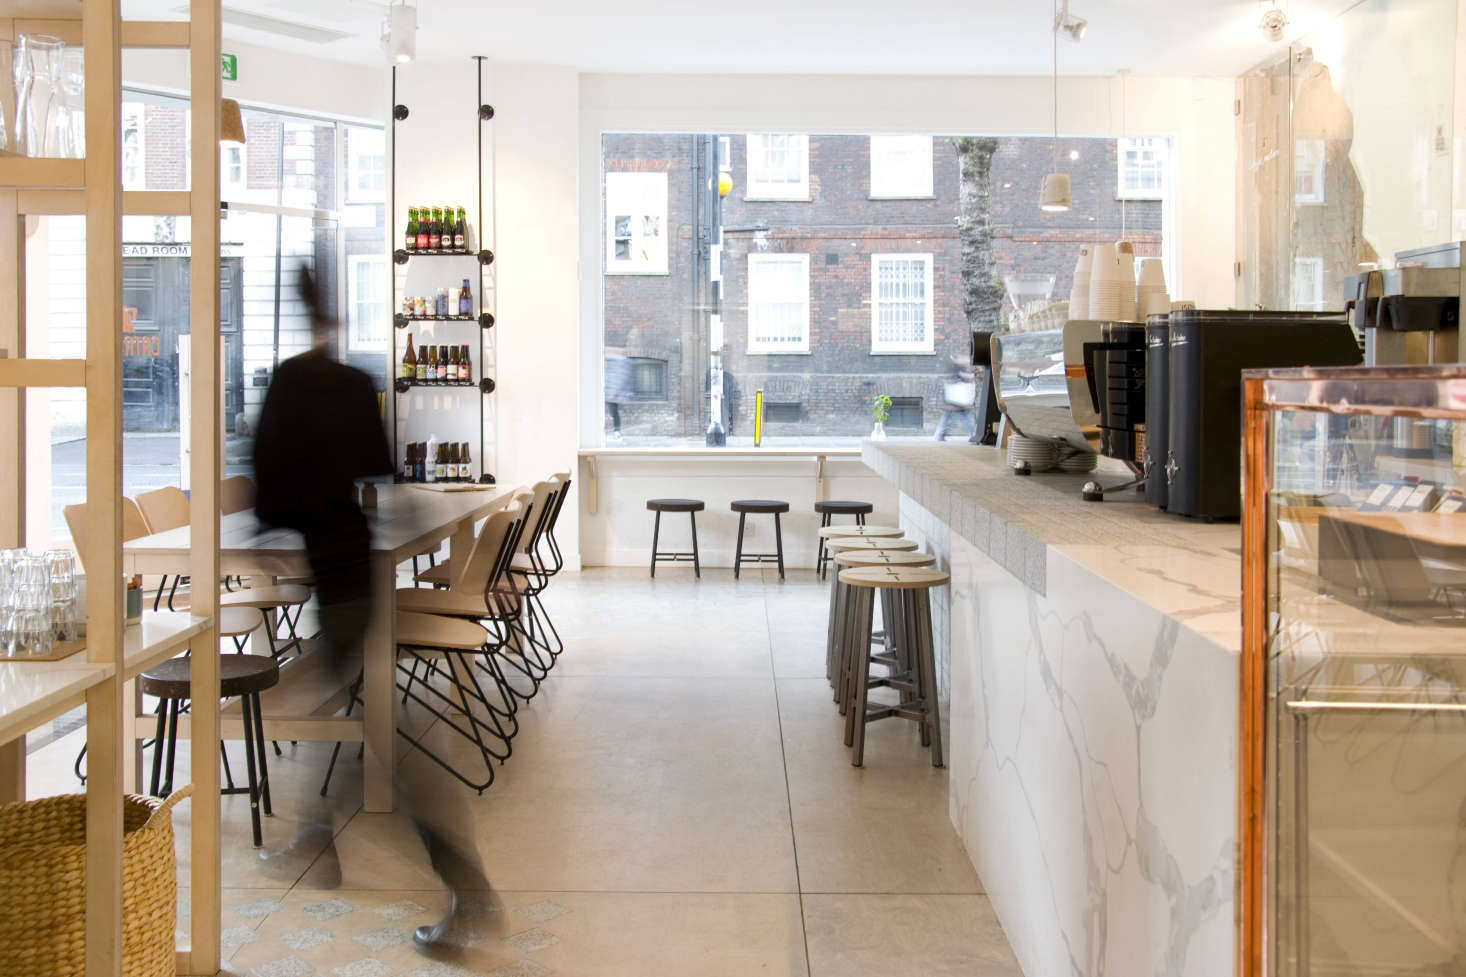 Pick what to experimentwith and what to keep simple. Even with mix-and-match stone, patterned floors, and cork and copper details, the Catalyst spacelooks bright, not busy, thanks to simple white walls: For vetted white paints, see Easy Pieces: Architect's White Paint Picks.